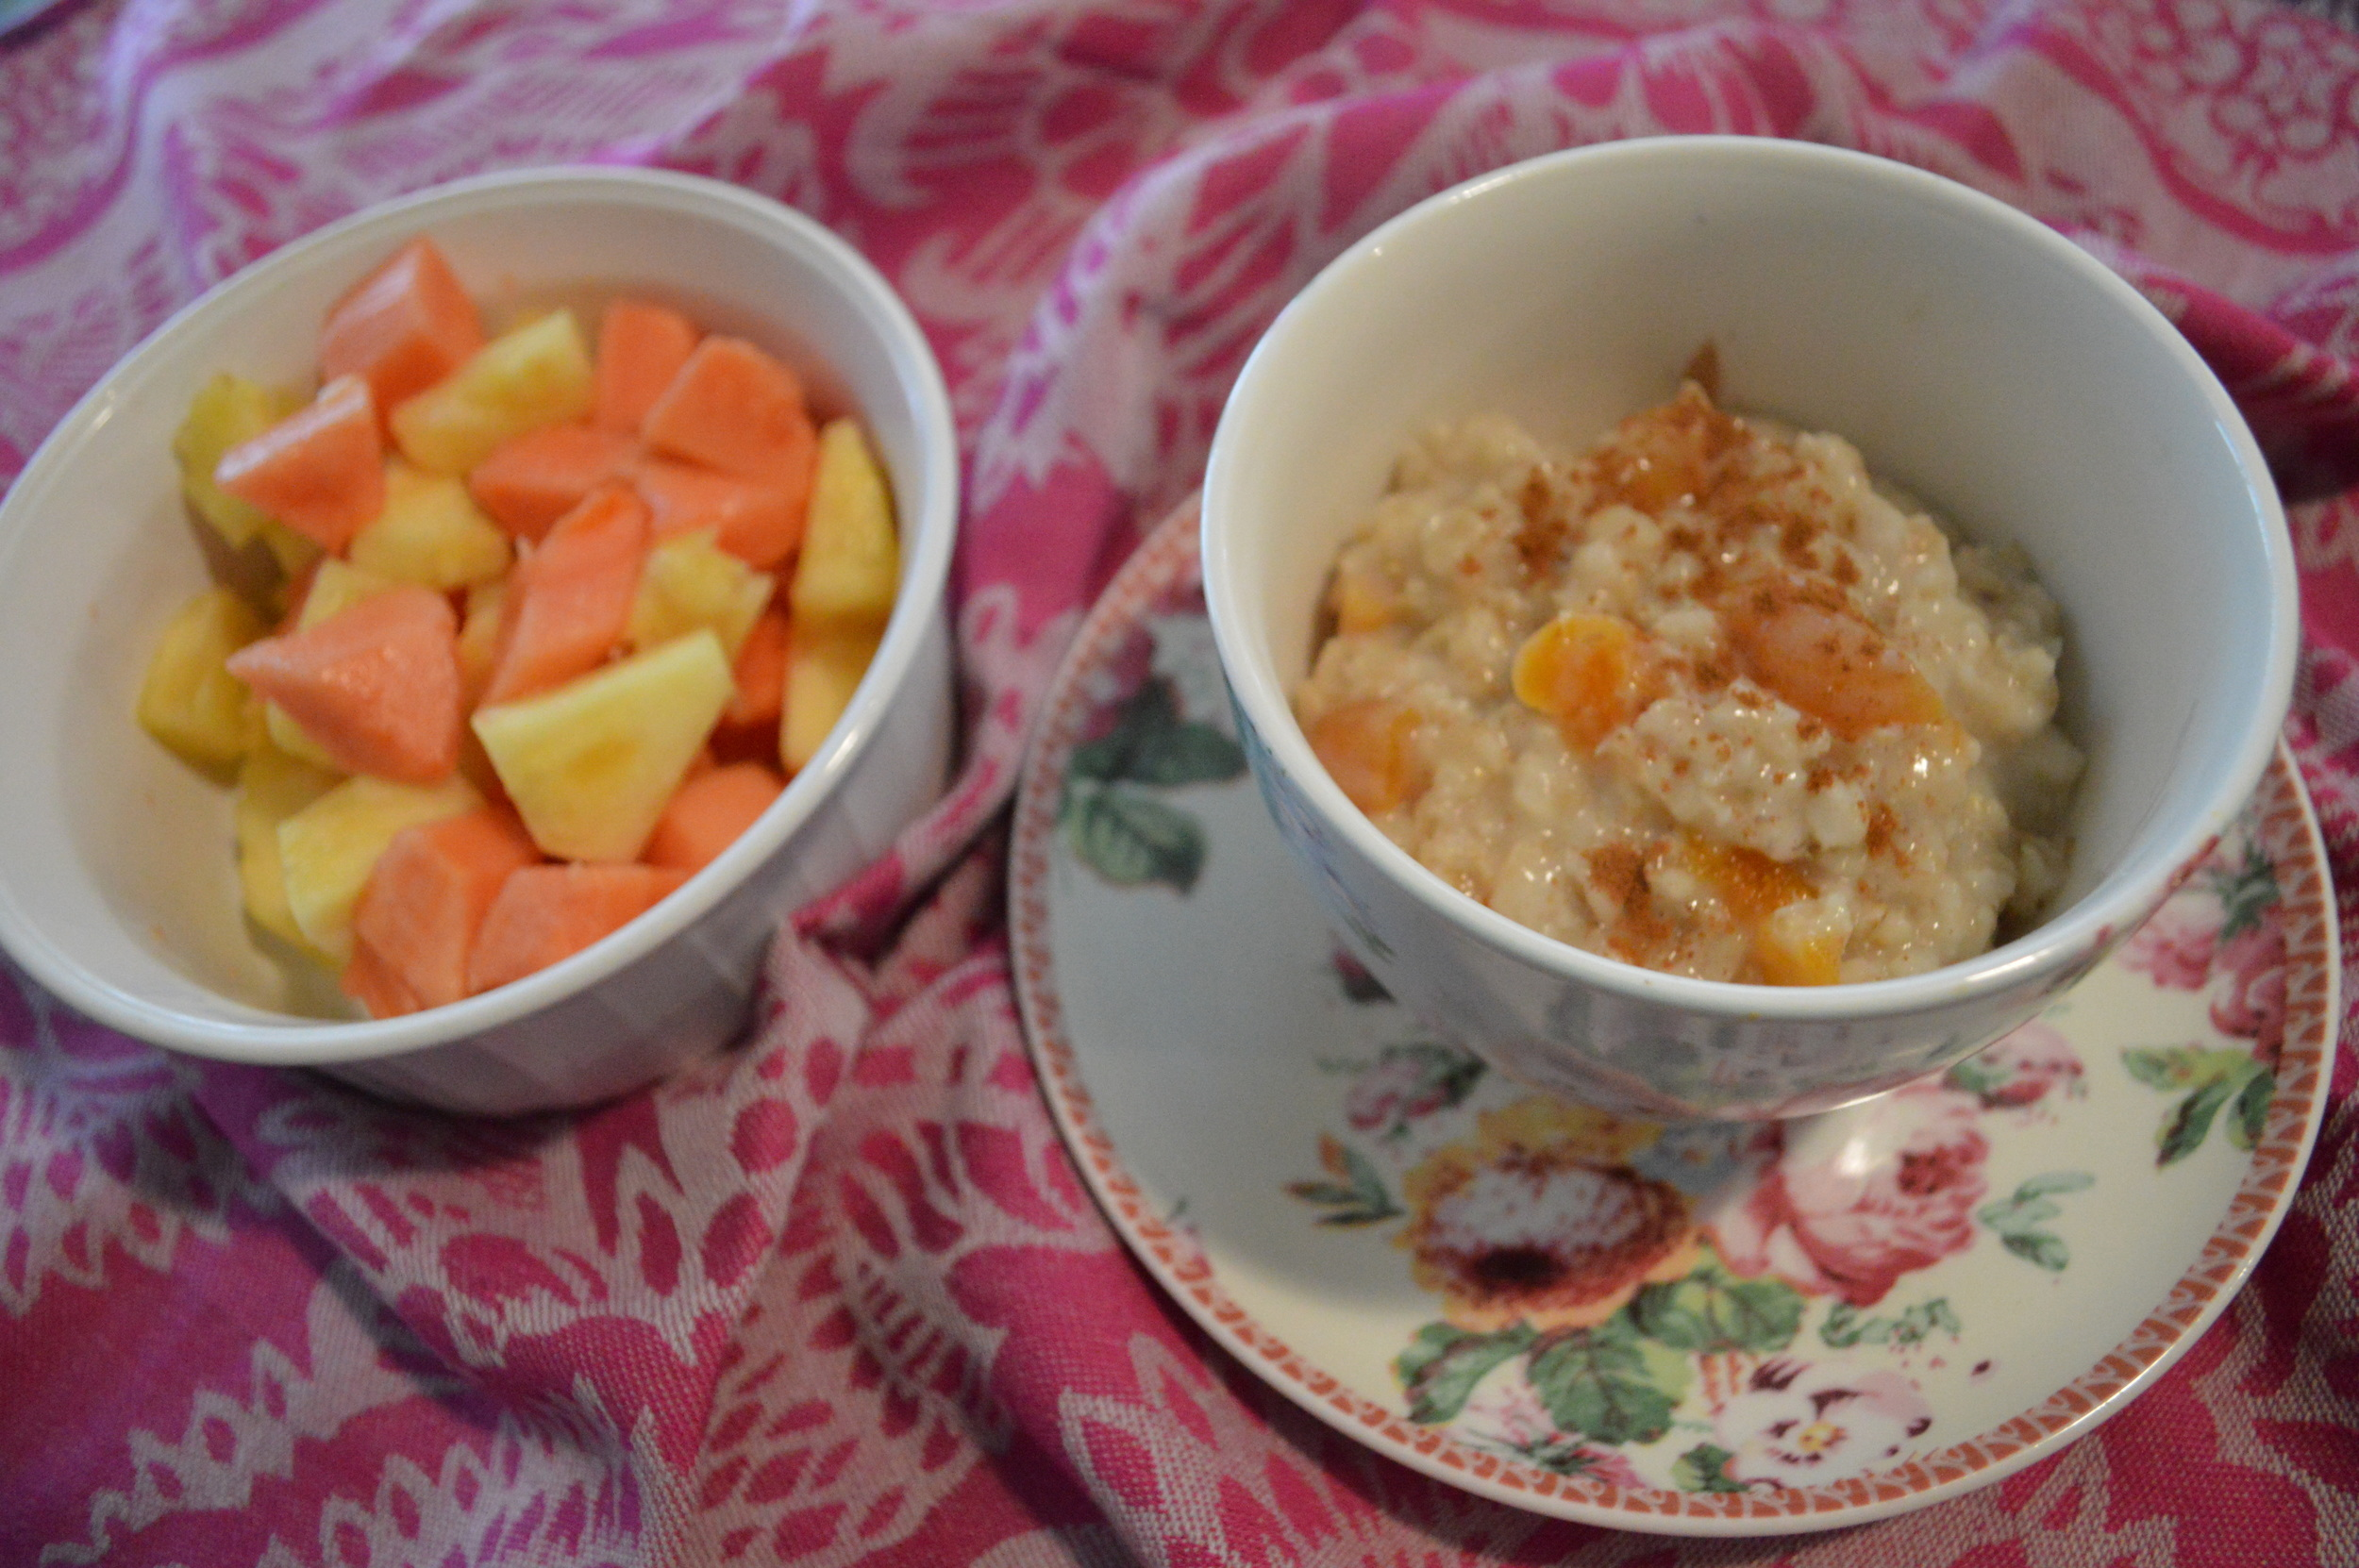 Oatmeal & Fruit